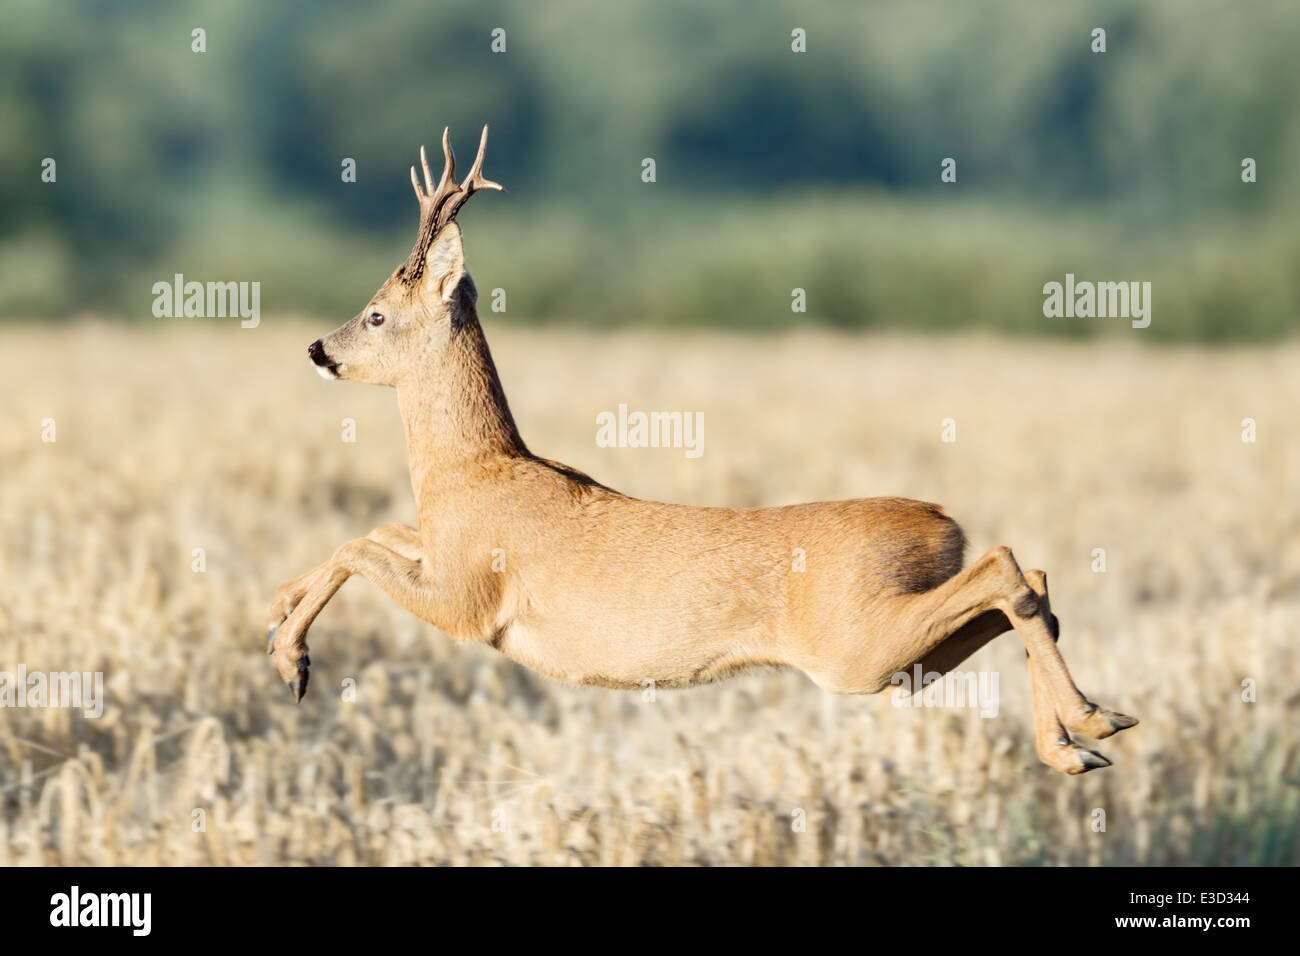 A Roe buck shows a clean pair of heals as he leaps through the air high above the arable field, Norfolk, England - Stock Image